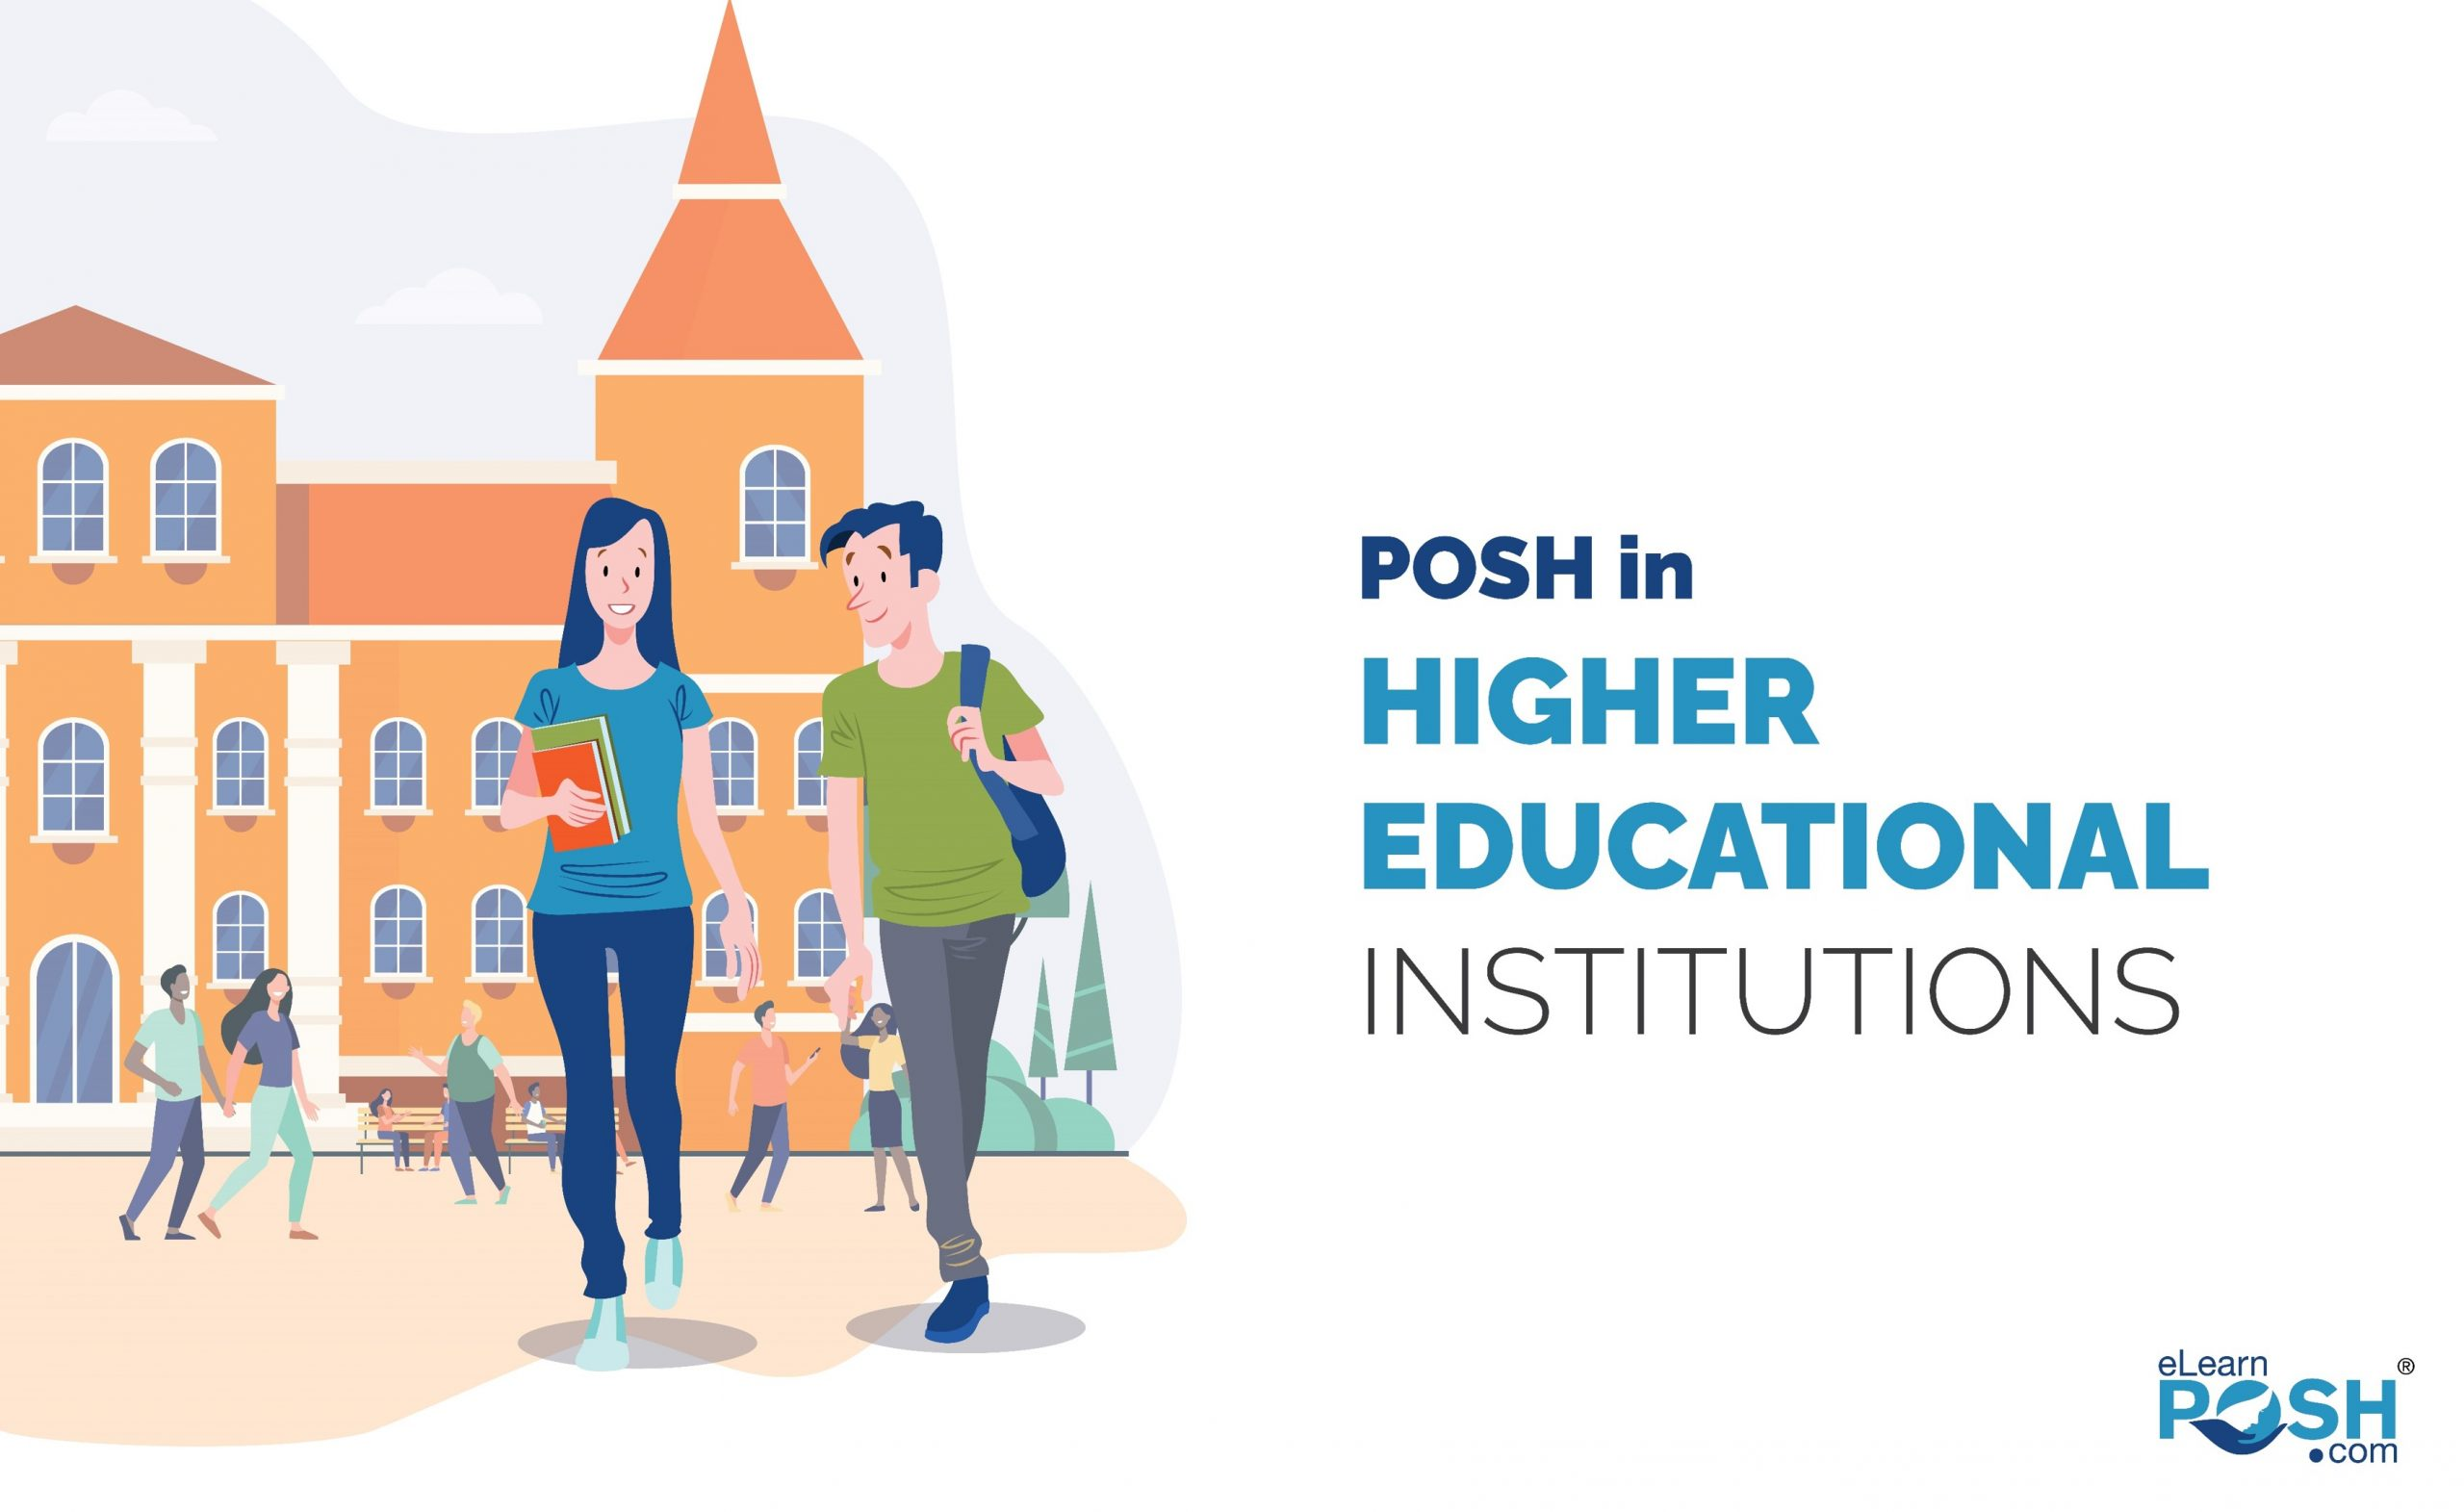 Preventing Sexual Harassment in Higher Educational Institutions